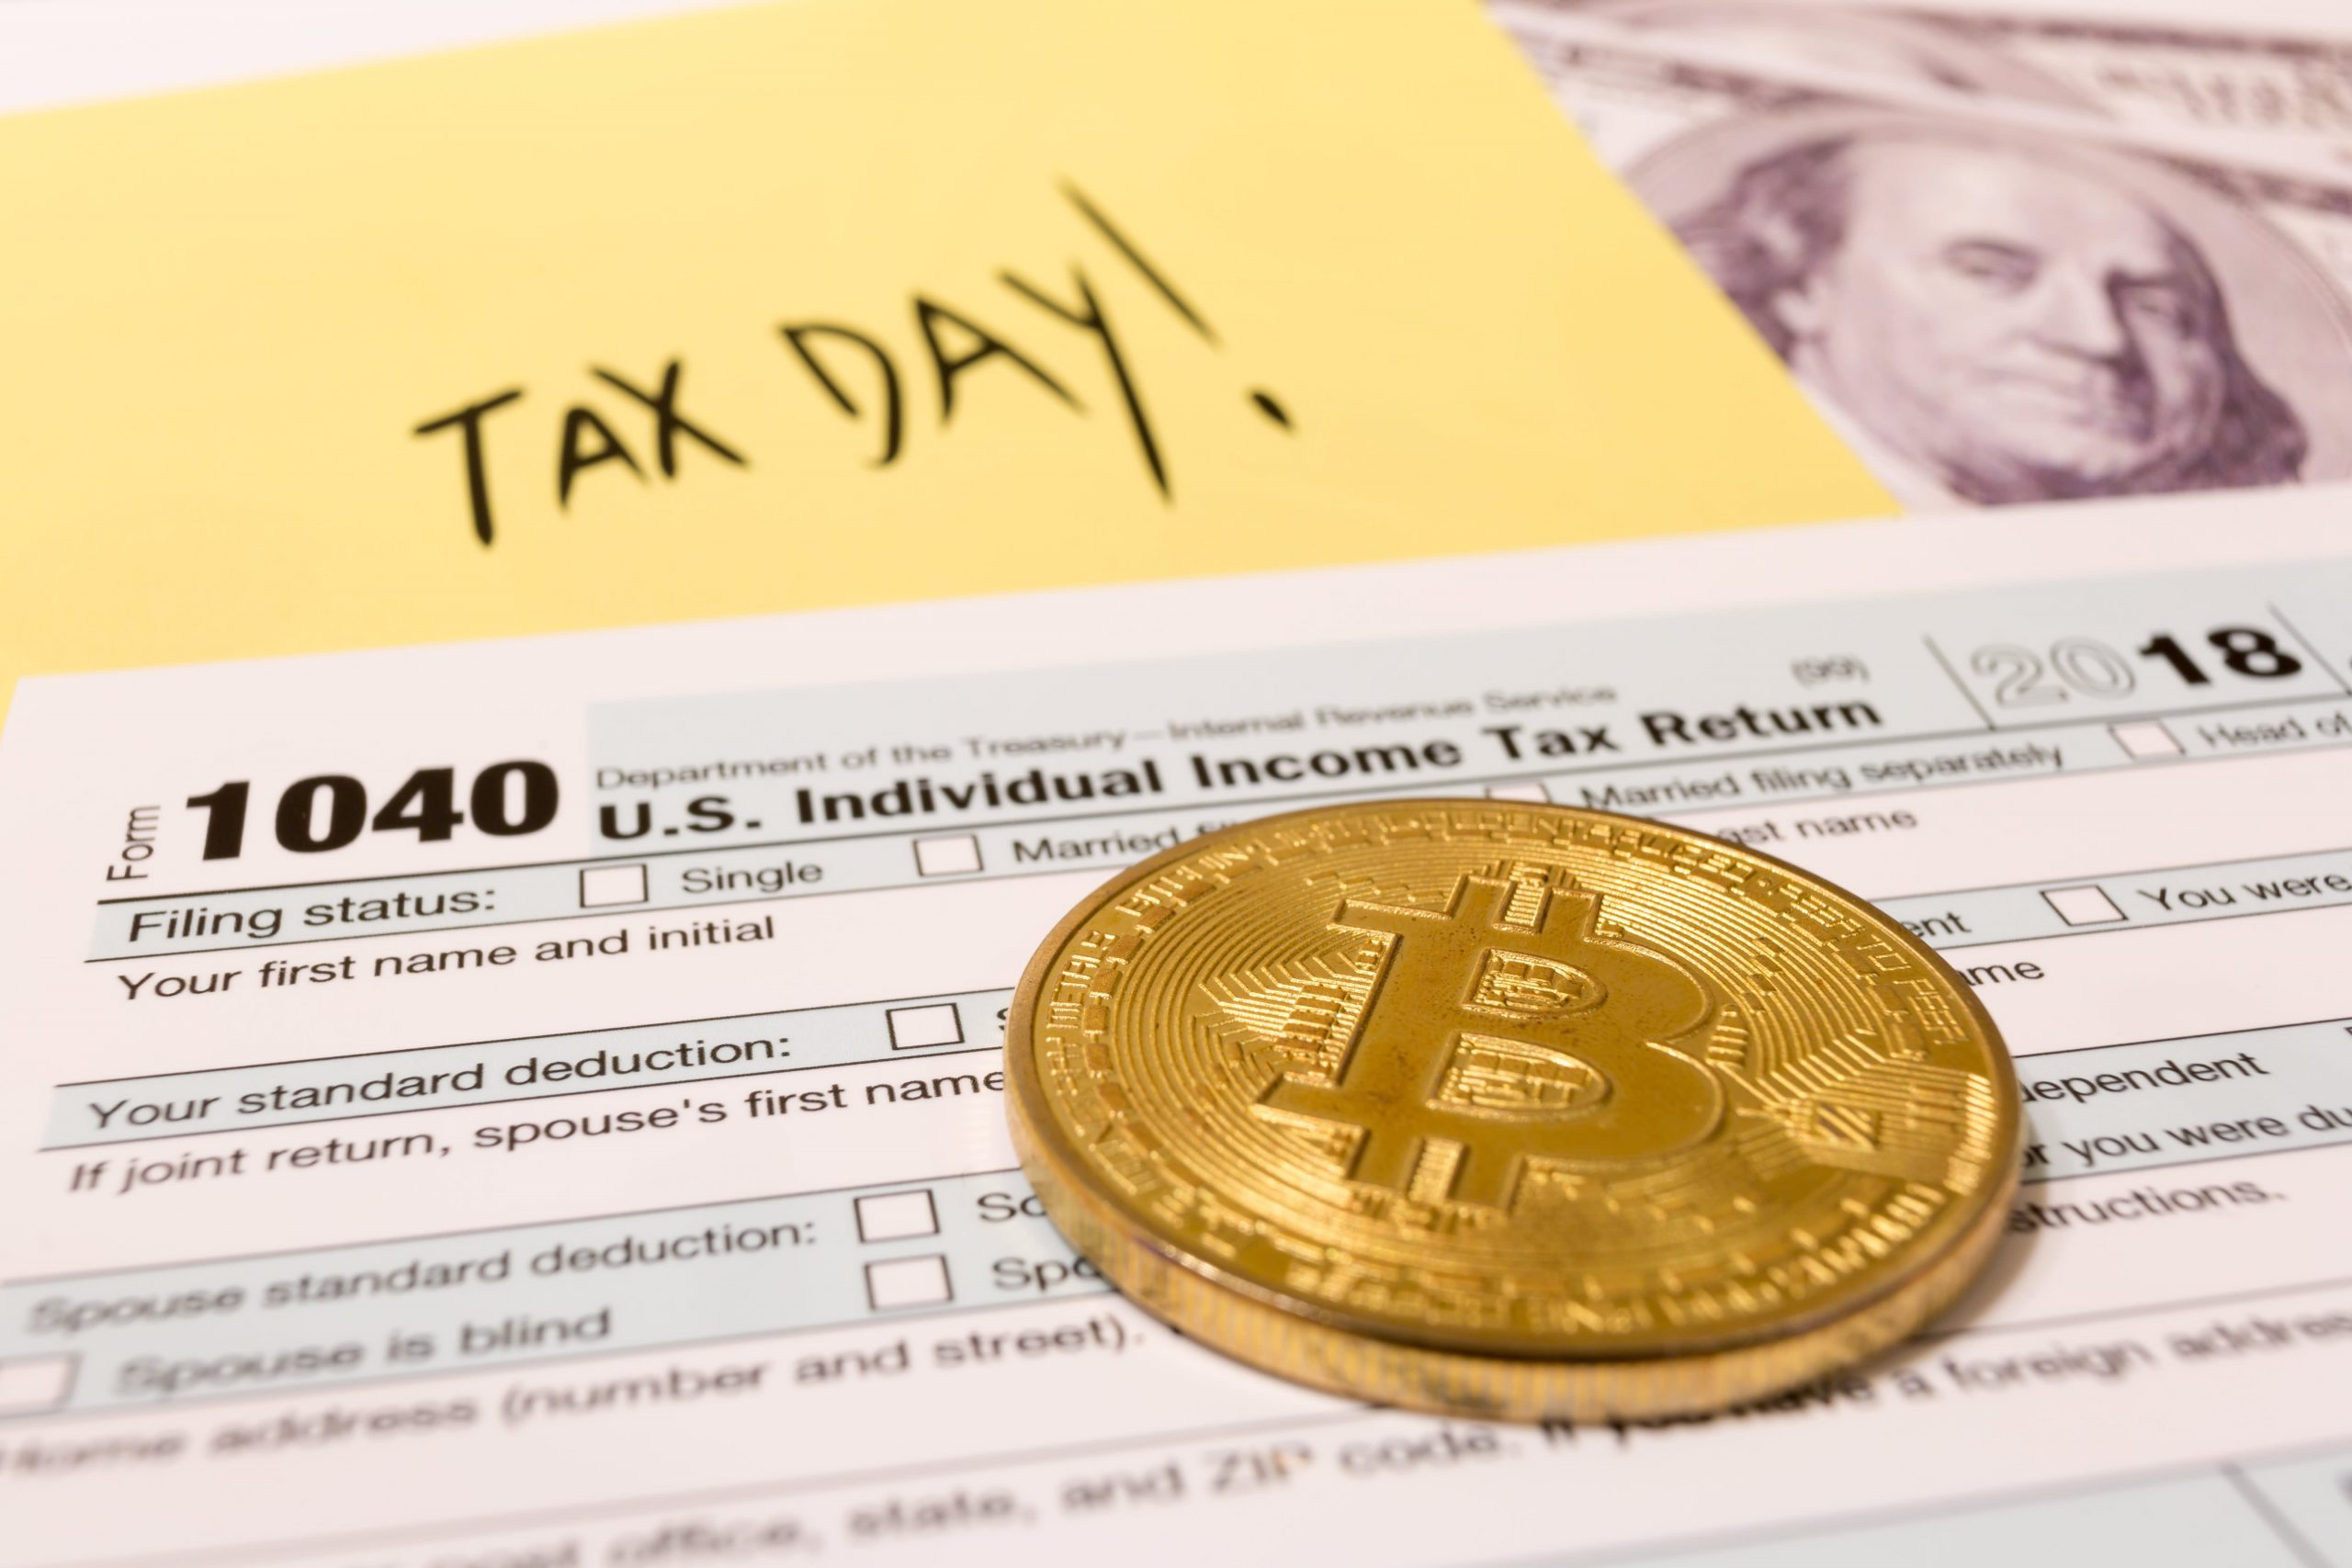 IRS is probing the dark web to look for cryptocurrency, NFT tax evasion